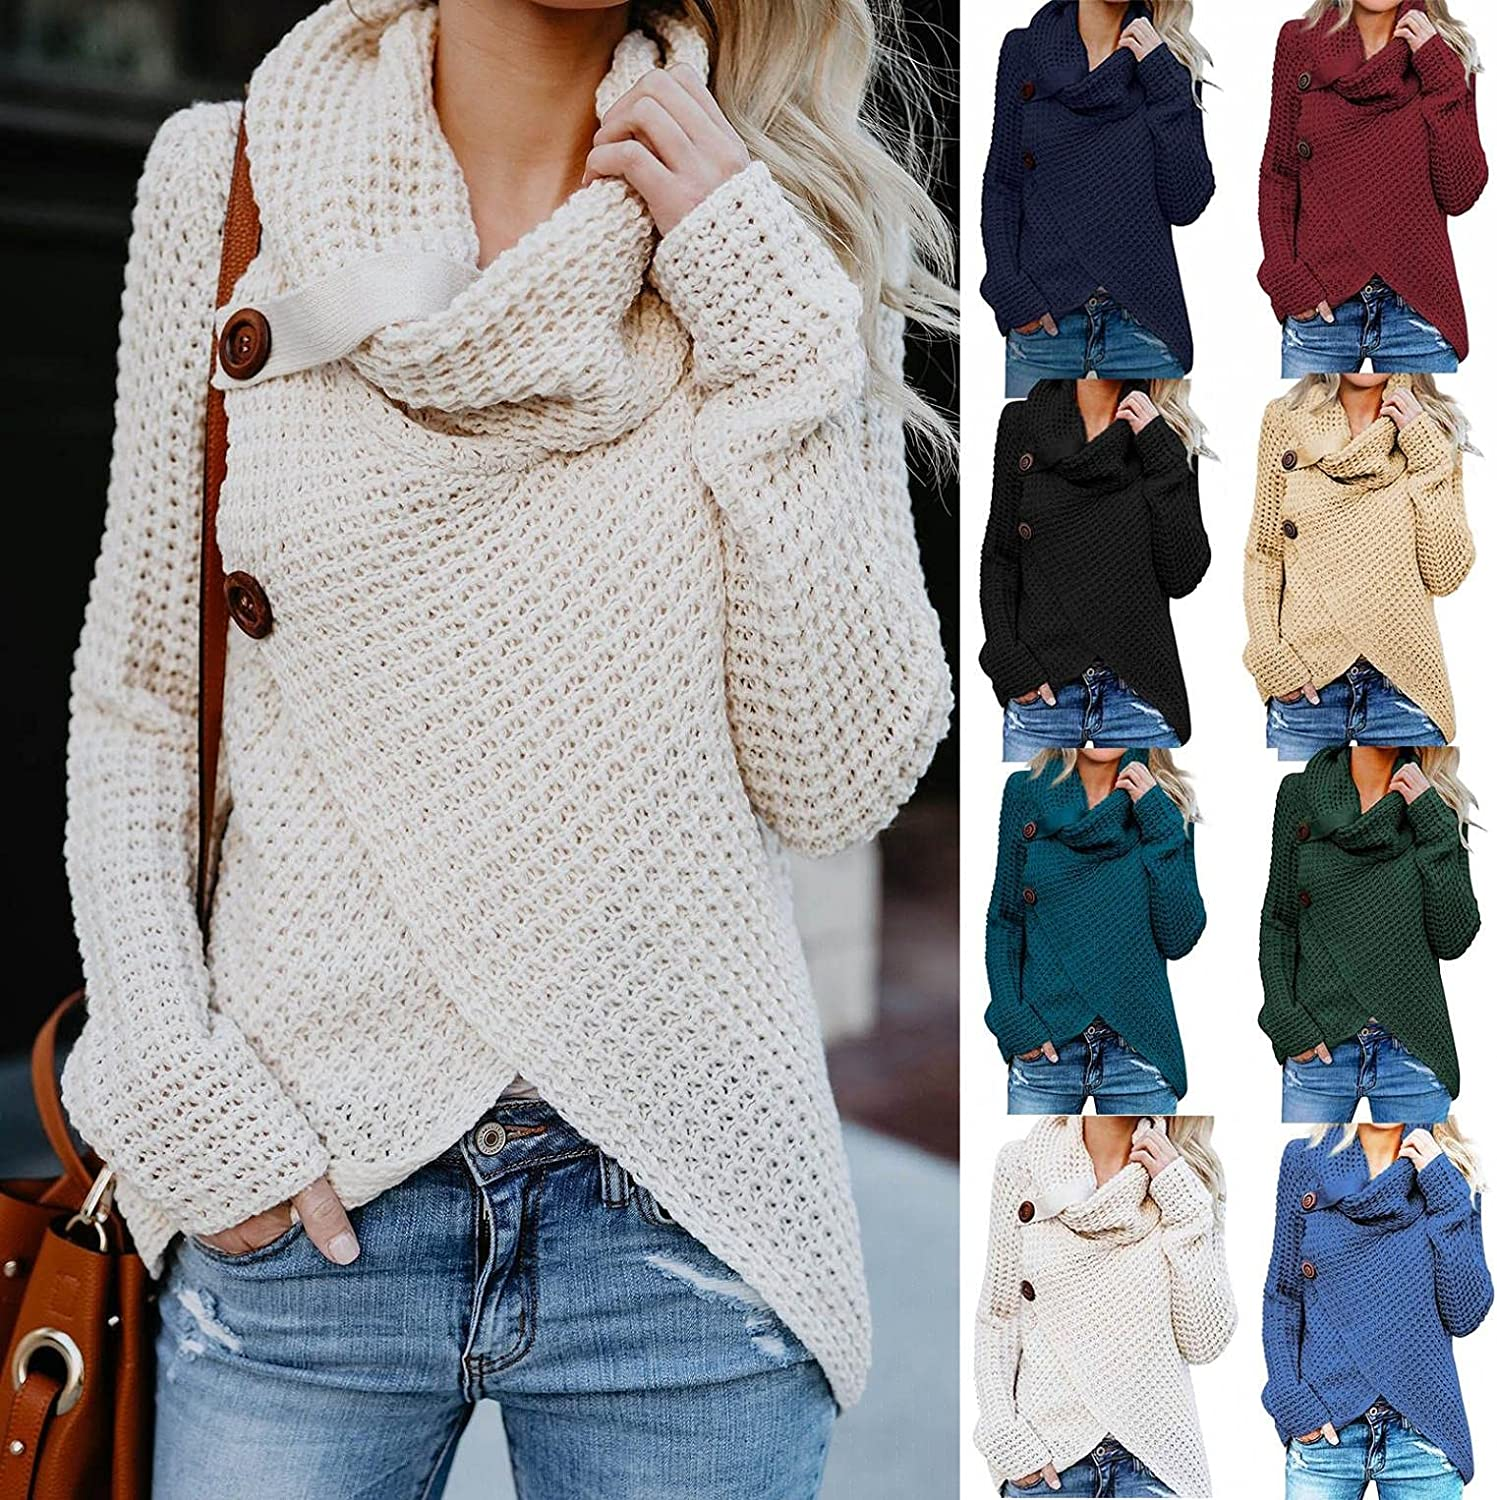 Gibobby Sweaters for Women Casual,Womens Button Cowl Neck Sweaters Long Sleeve Asymmetric Wrap Knit Pullover Sweatshirts